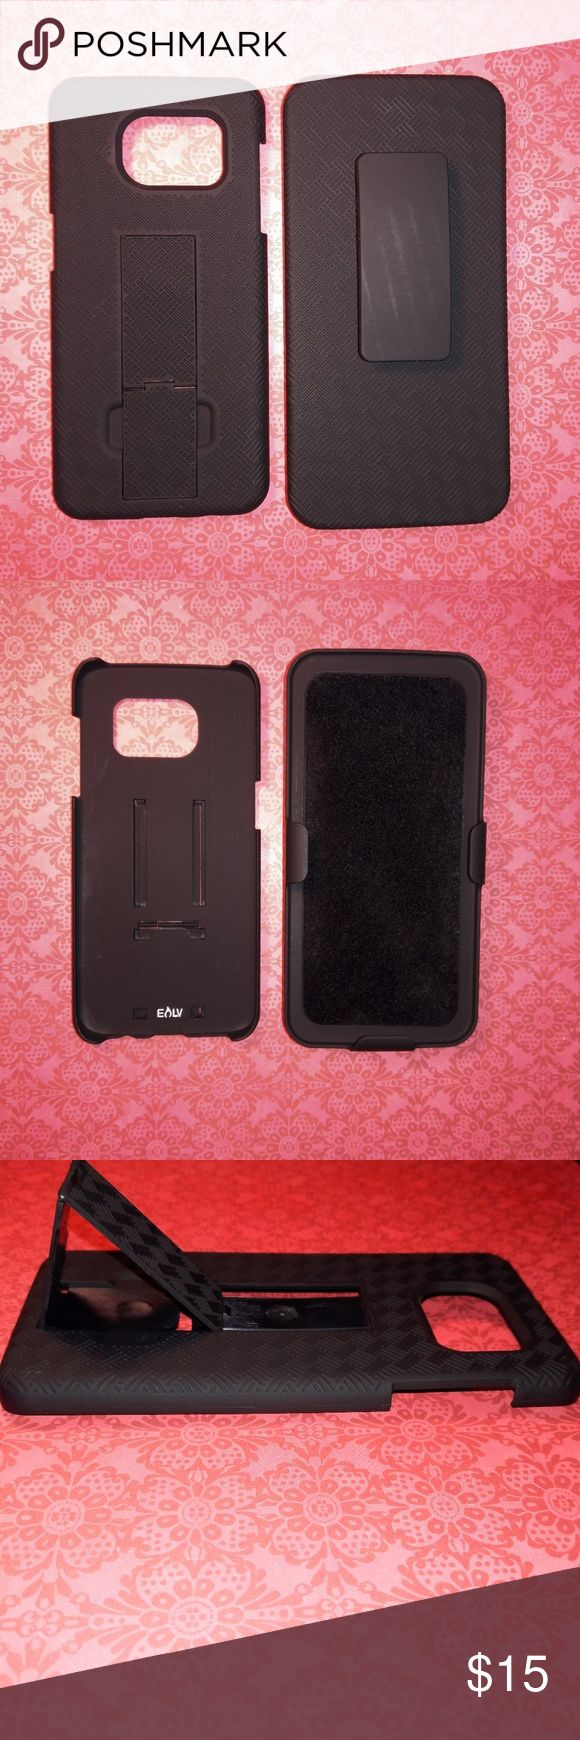 Samsung Galaxy S7 EDGE Textured Holster Case Elevated edges allows for secure usage preventing your screen from being shattered if dropped.*Rubberized textured finish conveniently provides outstanding grip.*The belt clip rotates 180 degrees to provide you with ultra-flexibility. Enjoy all your media along with Amazon Prime videos and Netflix videos with the ingenious built in kickstand.*Easy access to all your functional buttons (power, mute, volume, and home buttons).*Ultra-light casing…